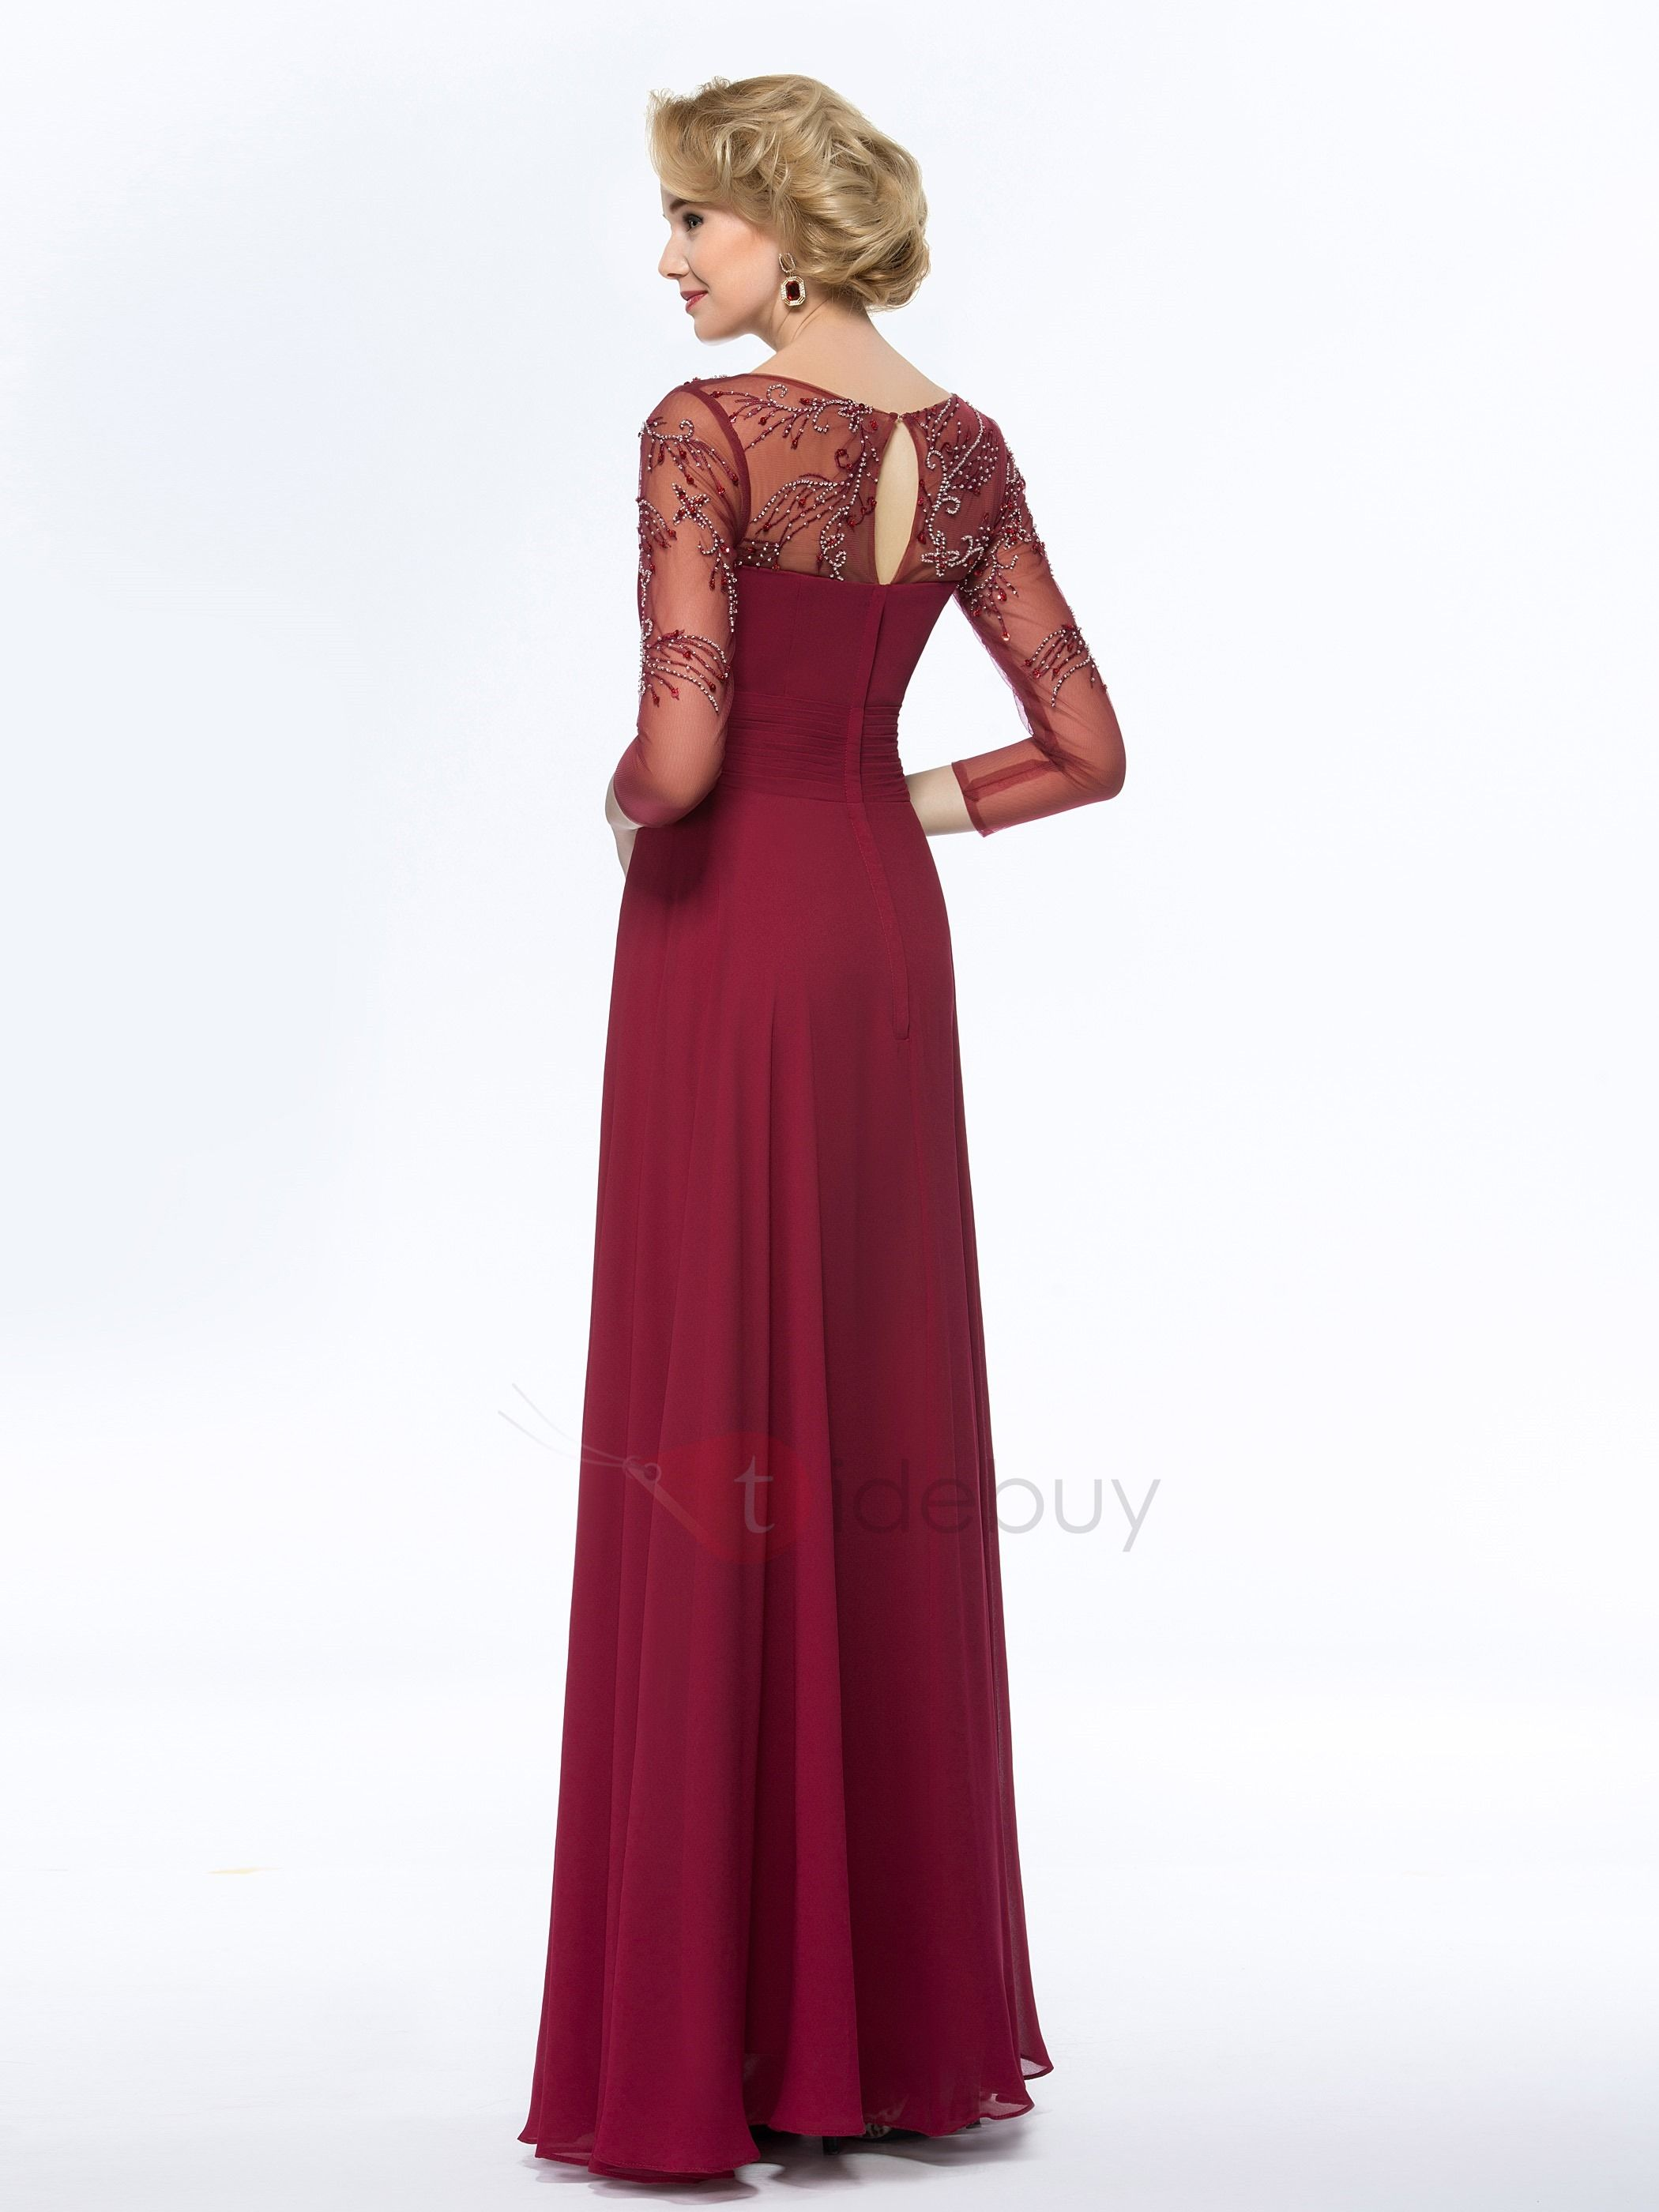 704396cac50 Tidebuy.com Offers High Quality Bateau Neck Beaded Long Mother Dress with  Sleeves